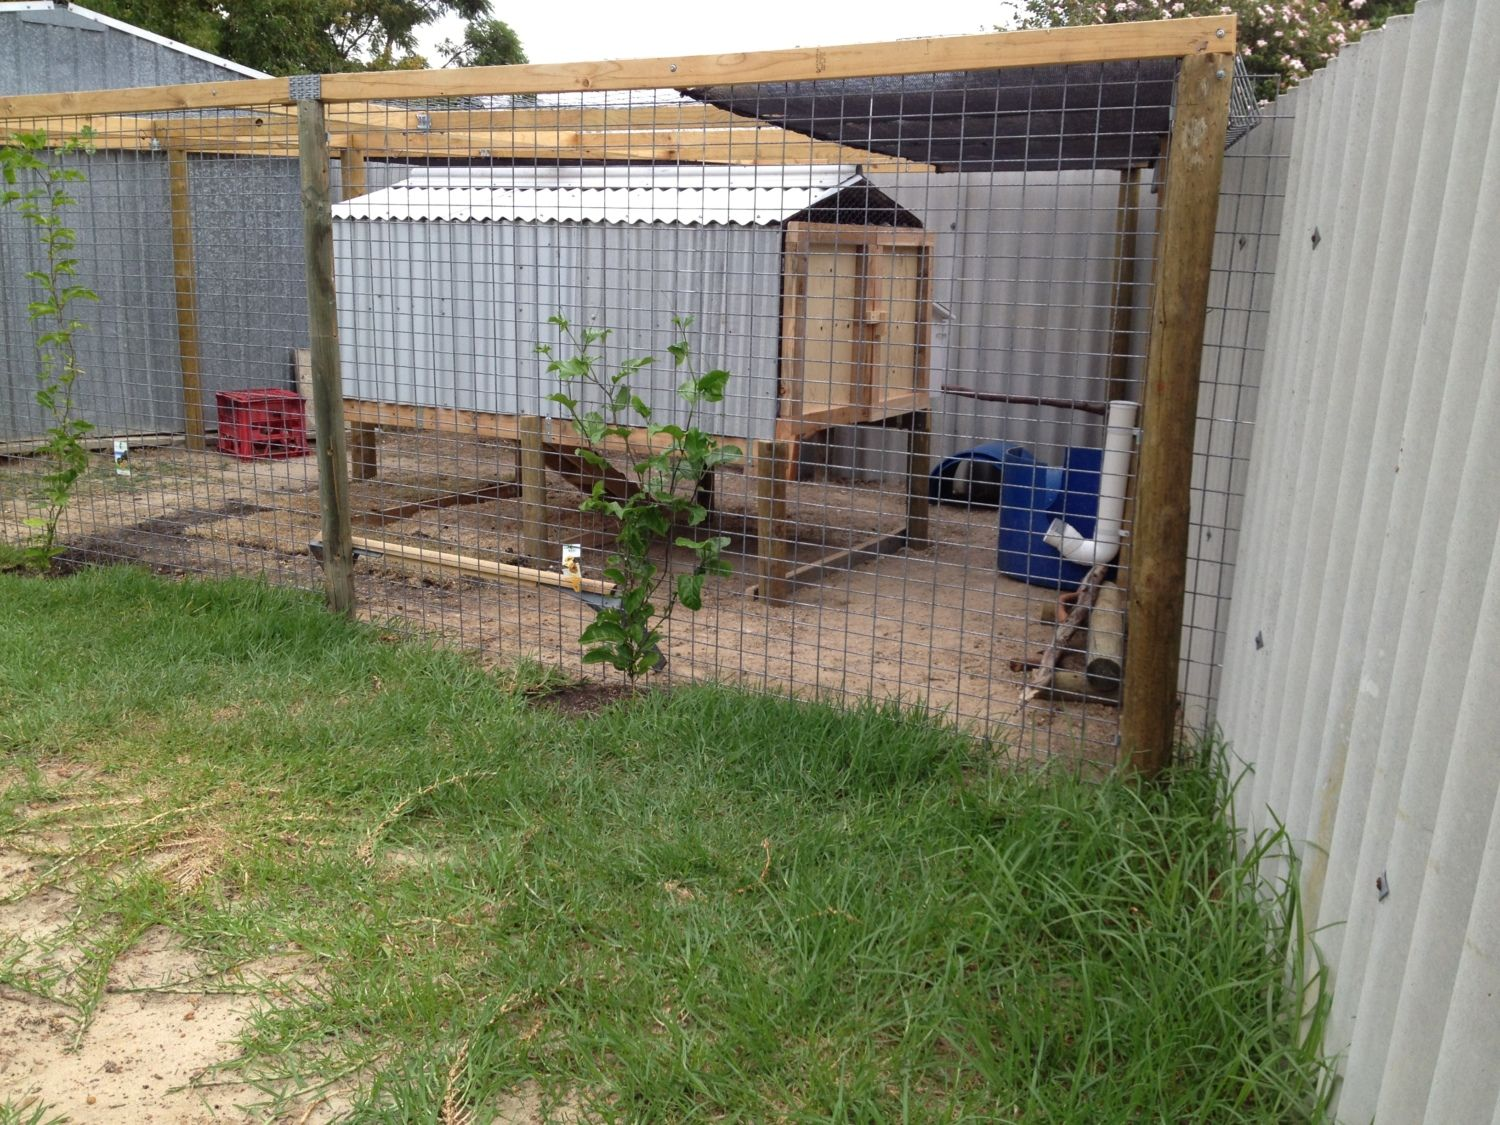 What Plants Should I Plant In My Chicken Coop